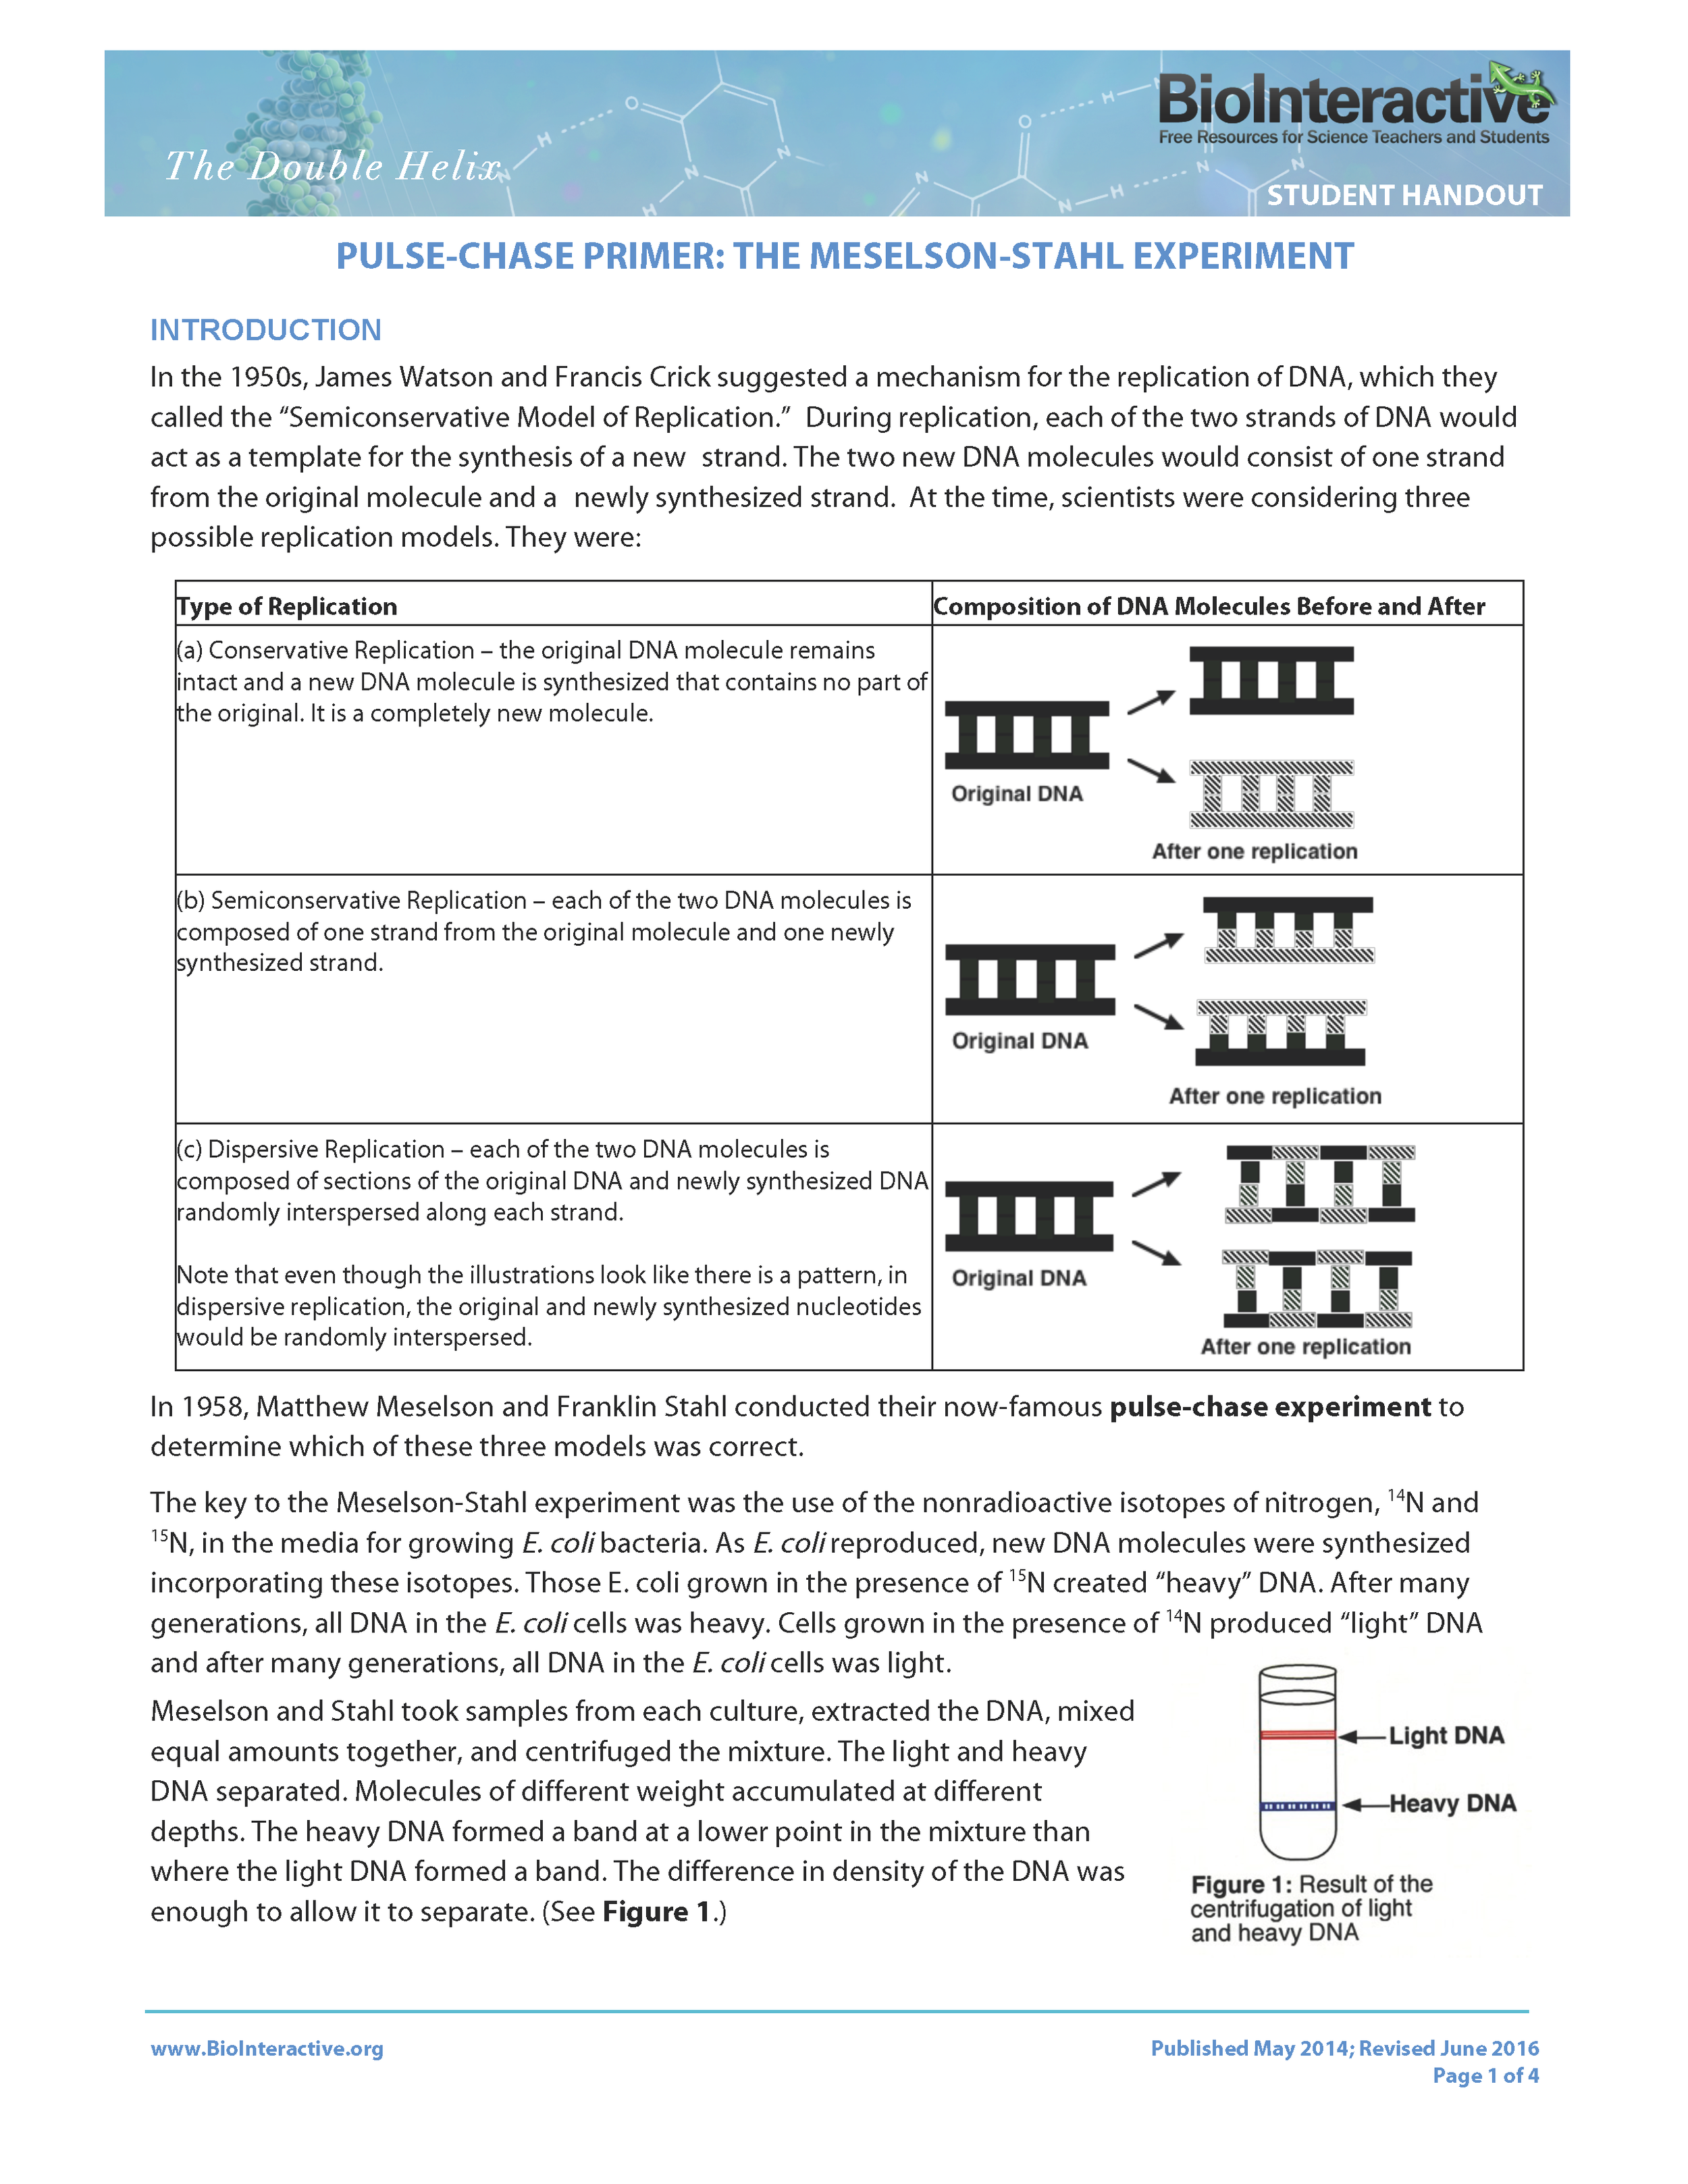 DoubleHelix-Pulse-Chase-Primer-Student (2) (1)_Page_1.png